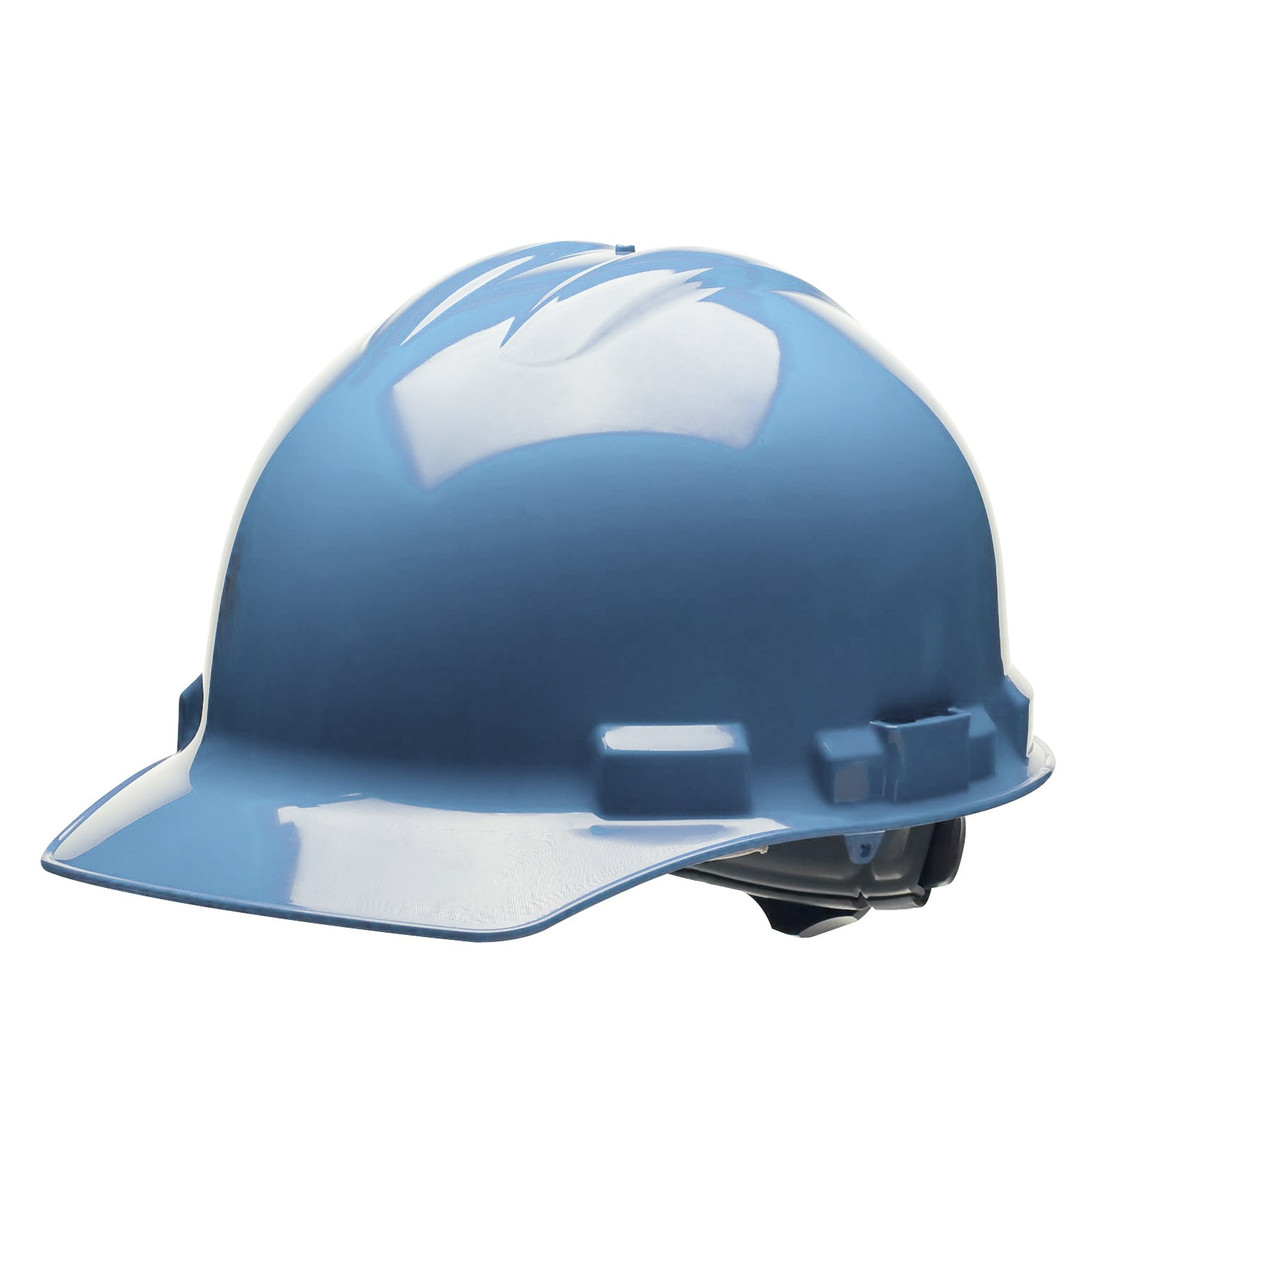 Blue Hard Hat Helmet Style Made in the USA